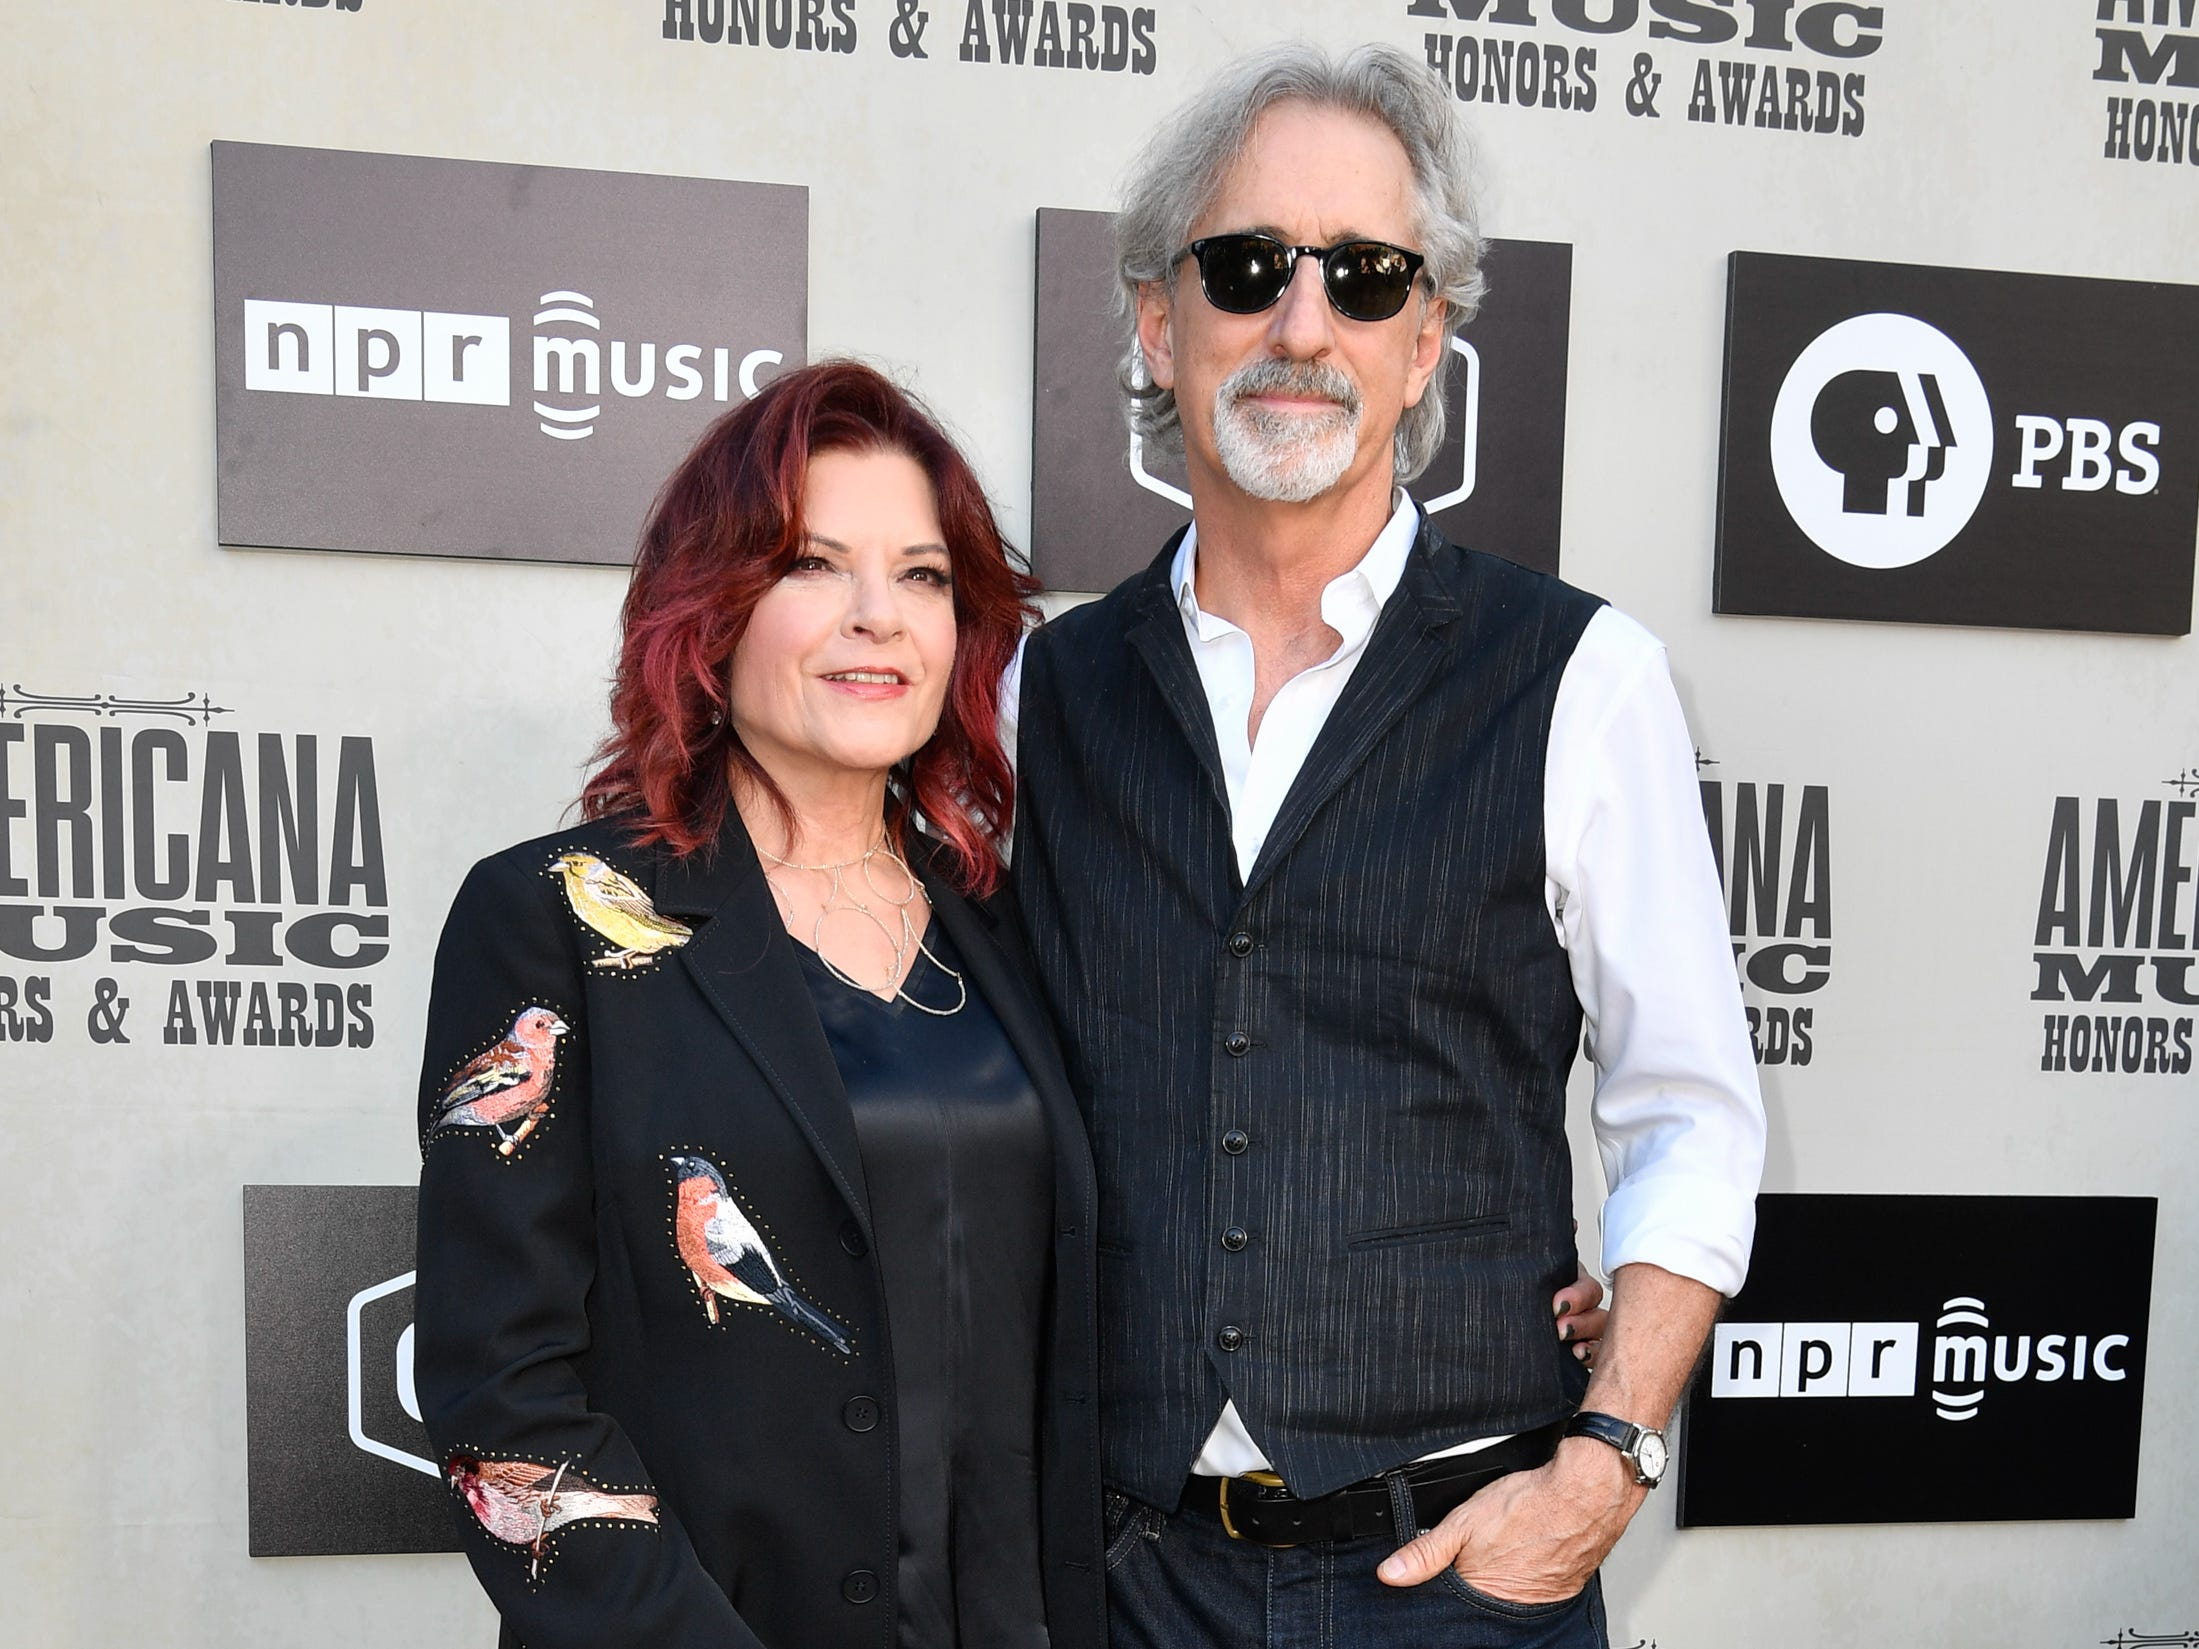 Rosanne Cash and John Leventhal pose on the red carpet before the 2018 Americana Honors and Awards show at the Ryman Auditorium in Nashville, Tenn., Wednesday, Sept. 12, 2018.